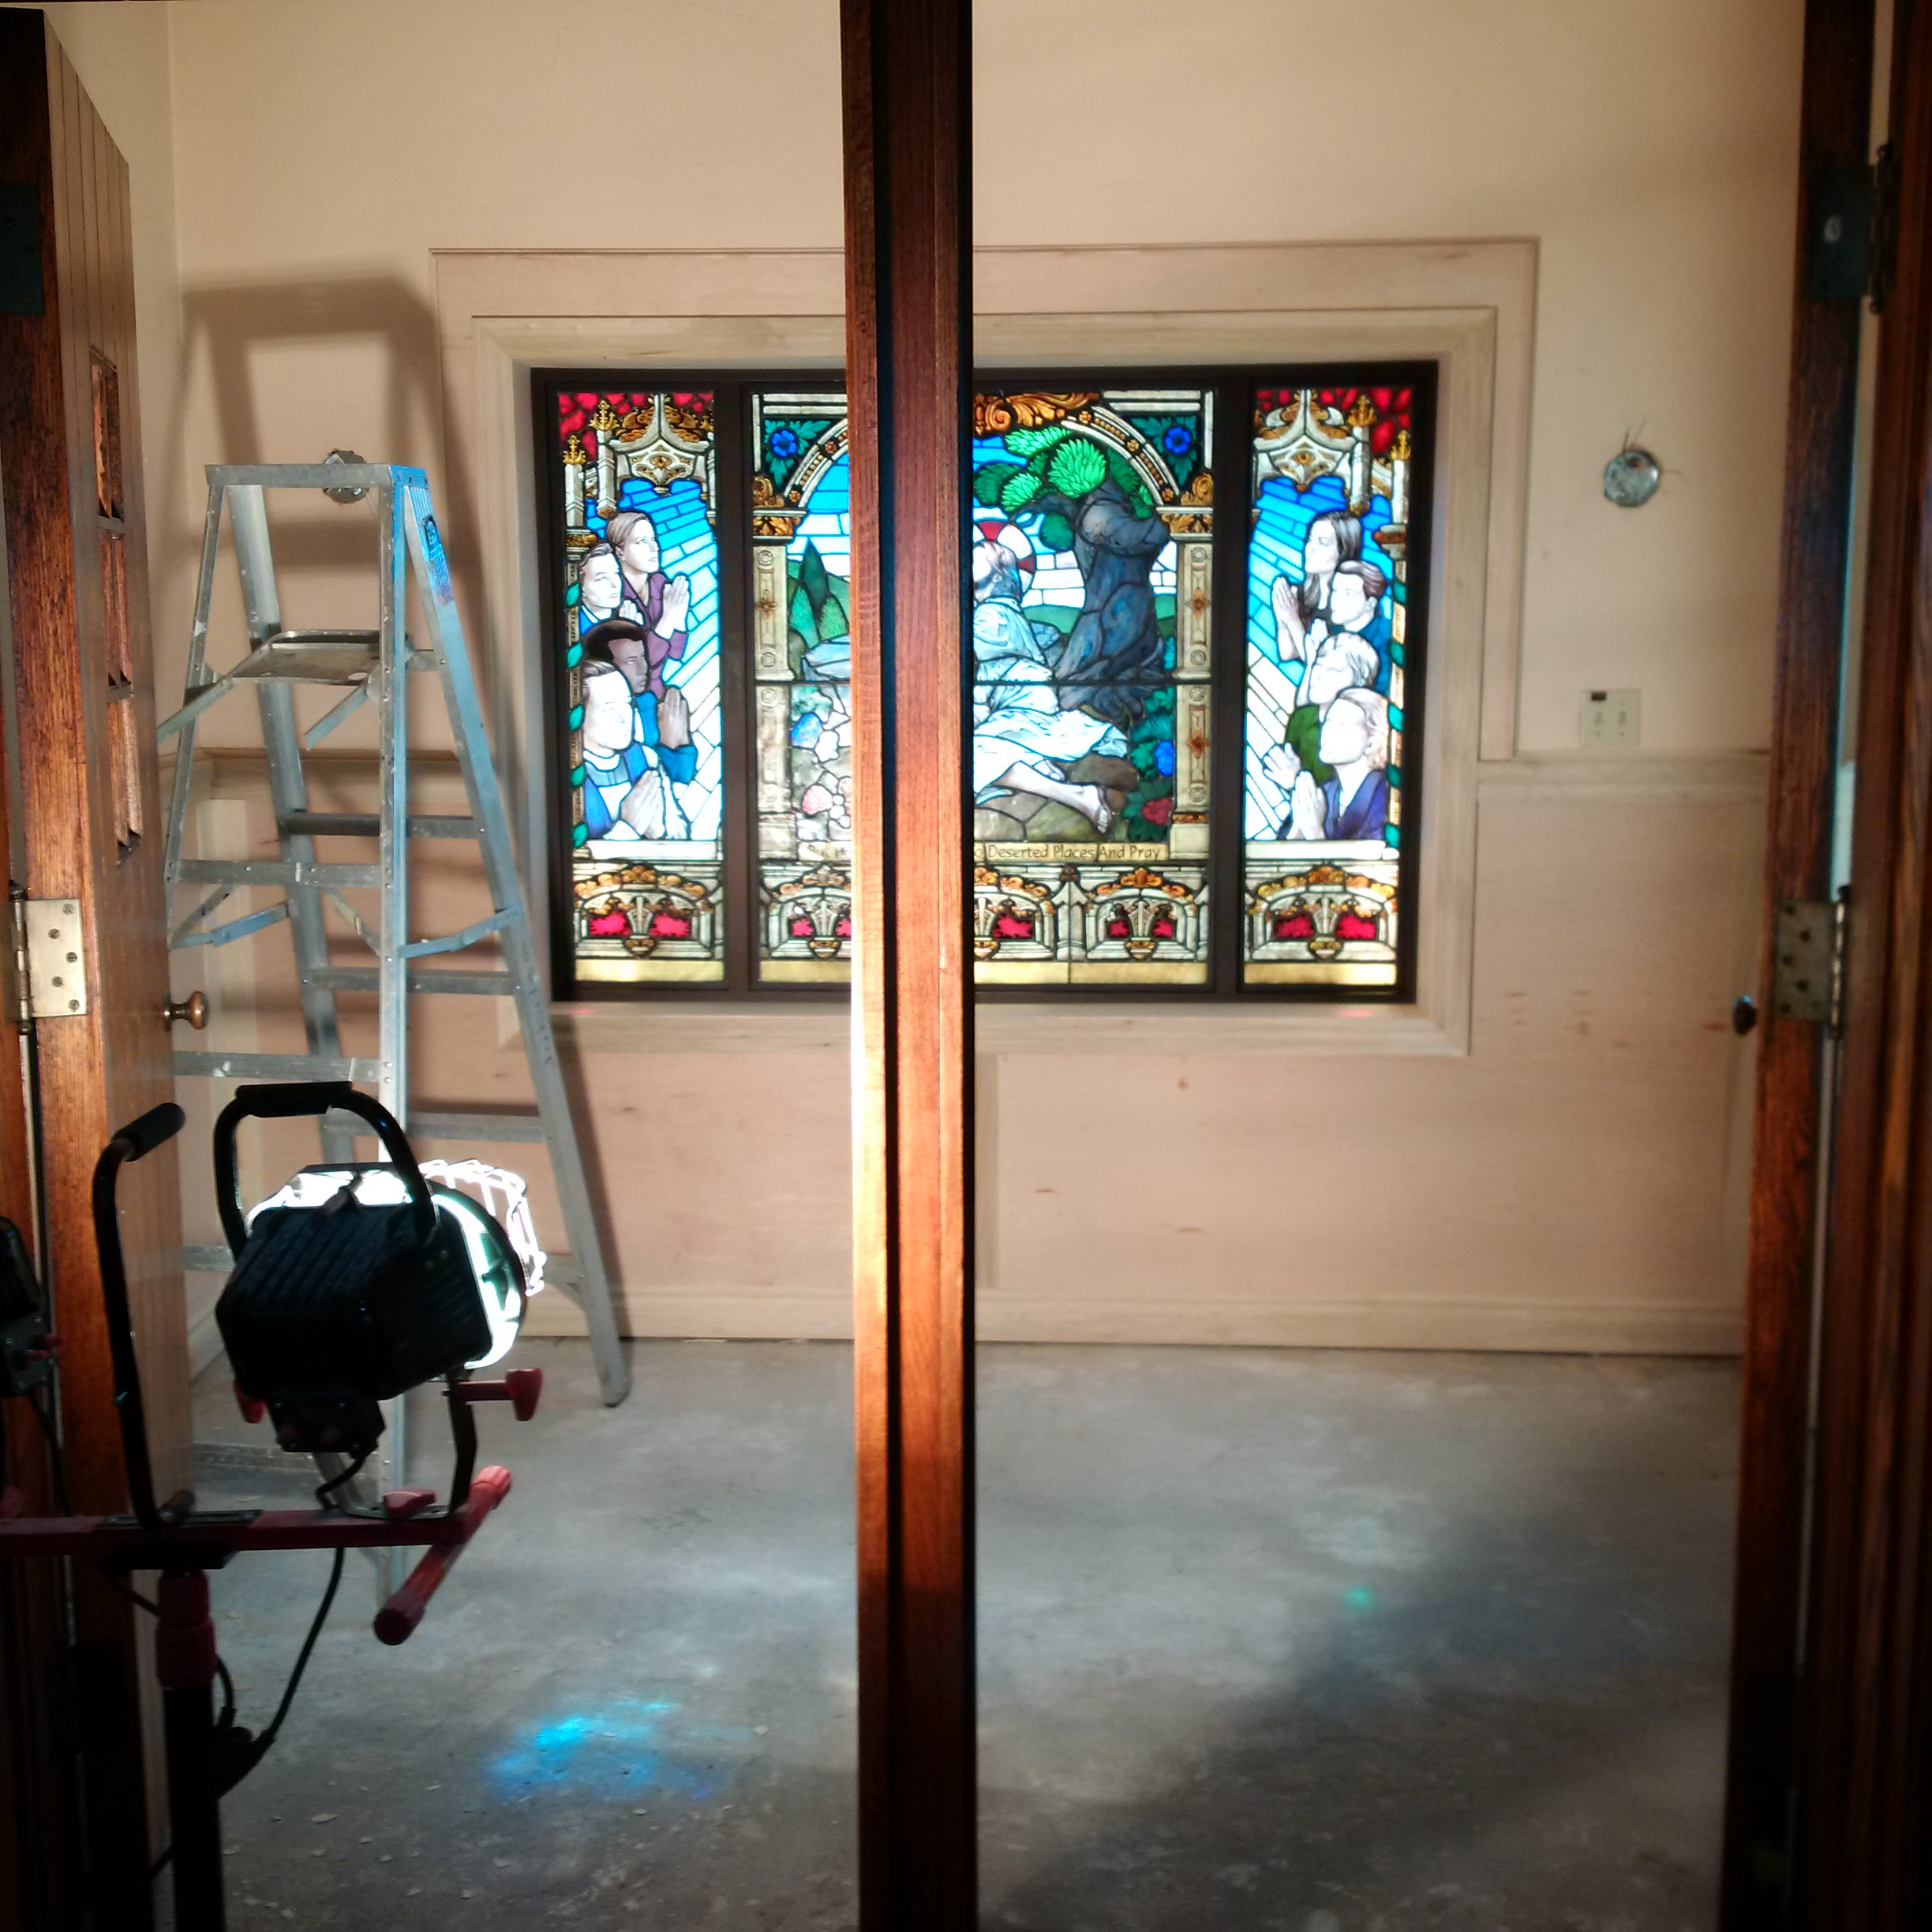 https://0901.nccdn.net/4_2/000/000/056/7dc/Prayer-Room-renovation.jpg